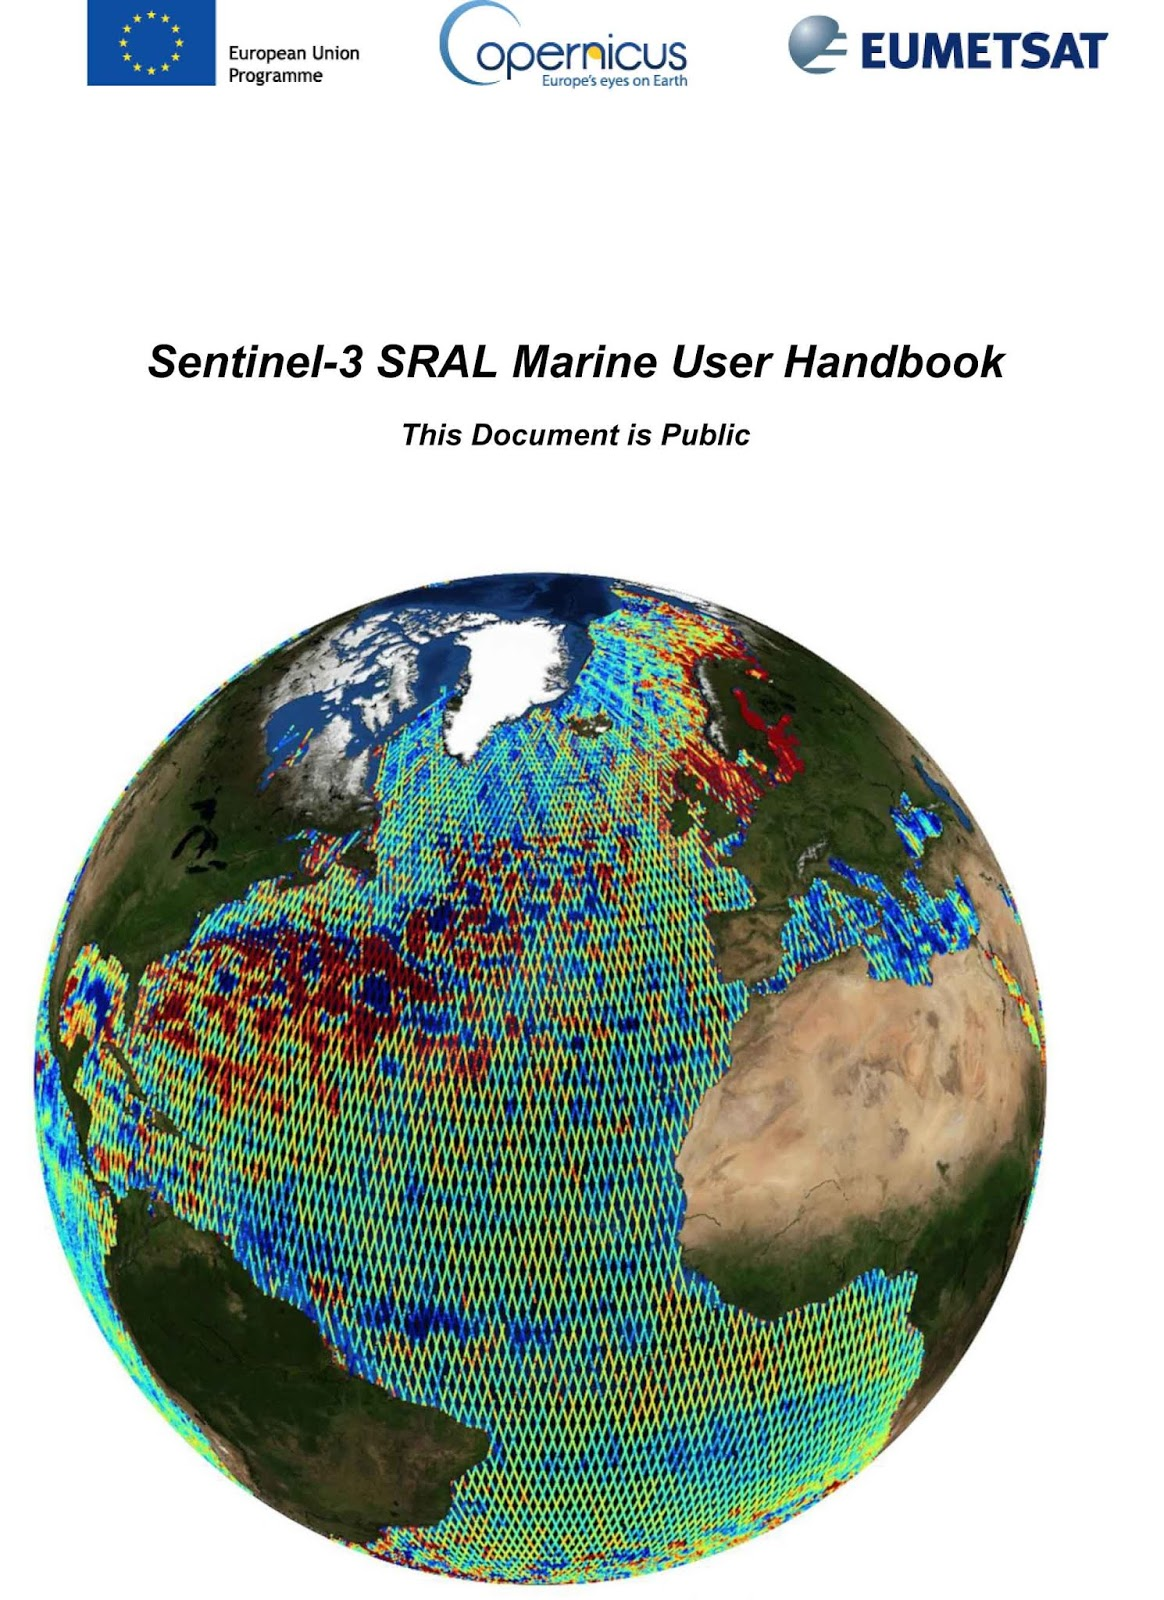 Marine User Handbook for Sentinel 3 users available online